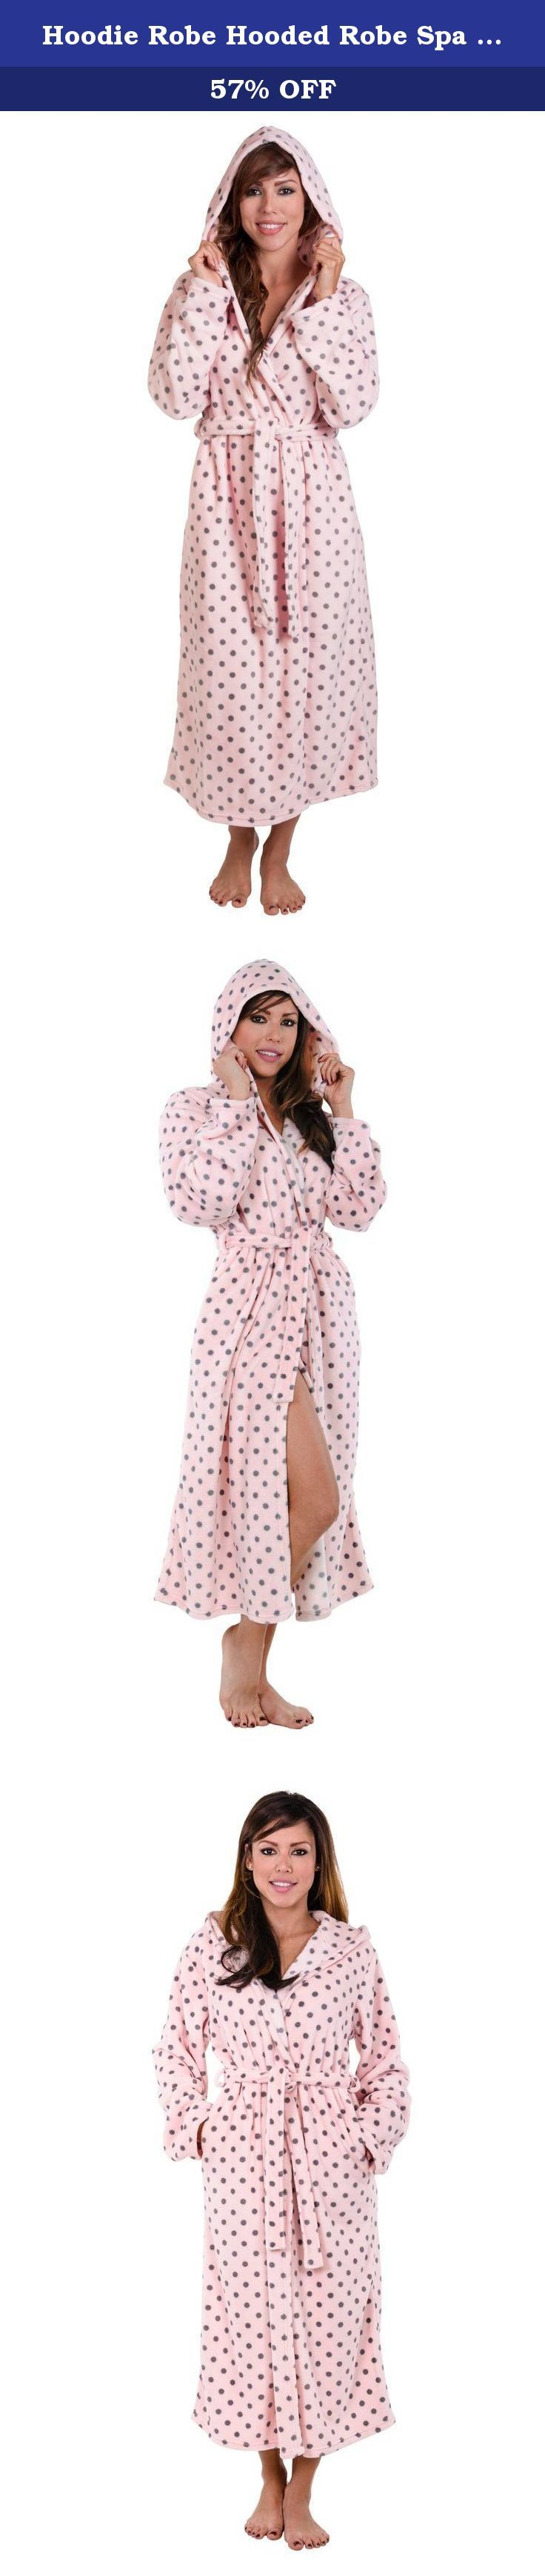 Hoodie Robe Hooded Robe Spa Bathrobe Hoody Robe Long Robe . This women & microfleece hooded bathrobe is made with a chic looking soft pink background with grey polka dot coral fleece fabric. Features include a wrap around waist tie and belt loops, two side pockets and a attached Hoodie. Easy going moments call for a robe like this: When you feel like lounging, wrap up in this cozy Hoody Robe and enjoy. Crafted from our special Micro Fleece soft brushed for exceptional softness, Machine…